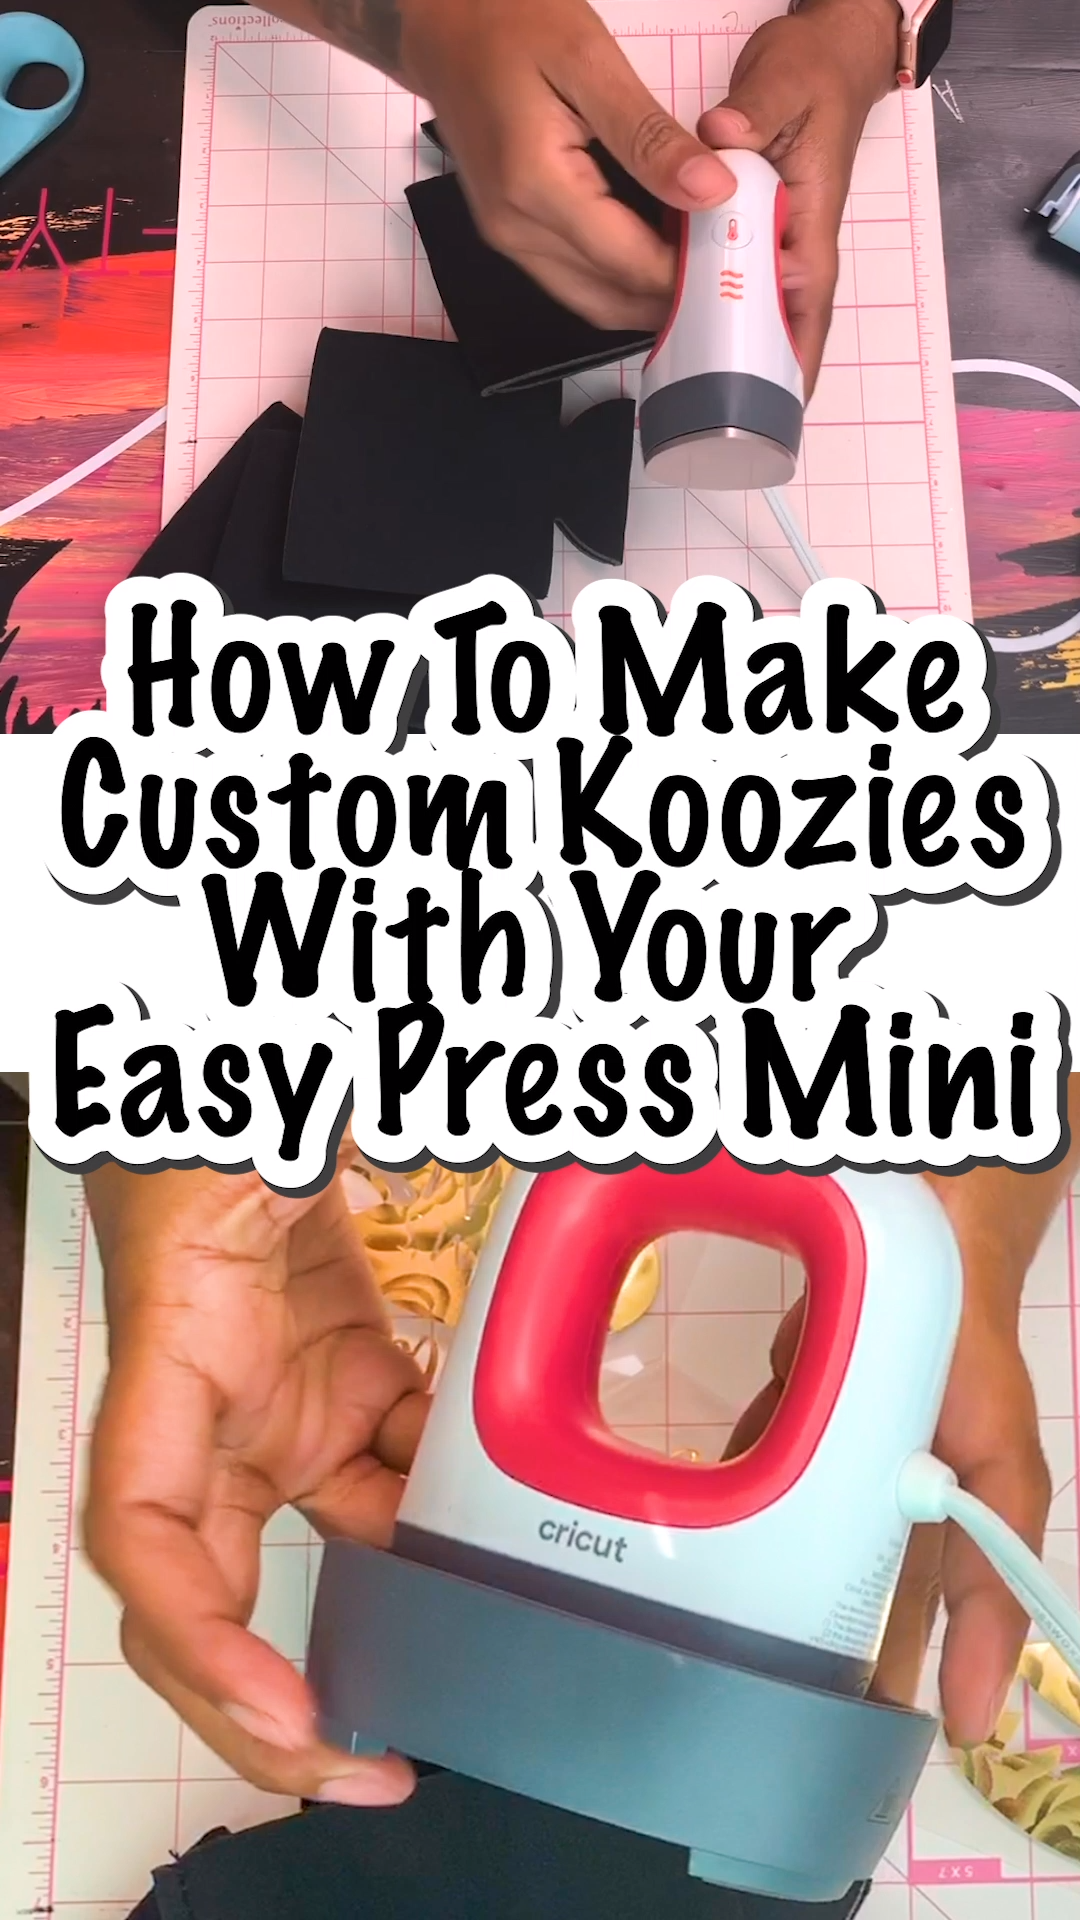 I love how easy it was to figure out how to make custom koozies with the EasyPress Mini. Plus, there's a video! Such a great resource!